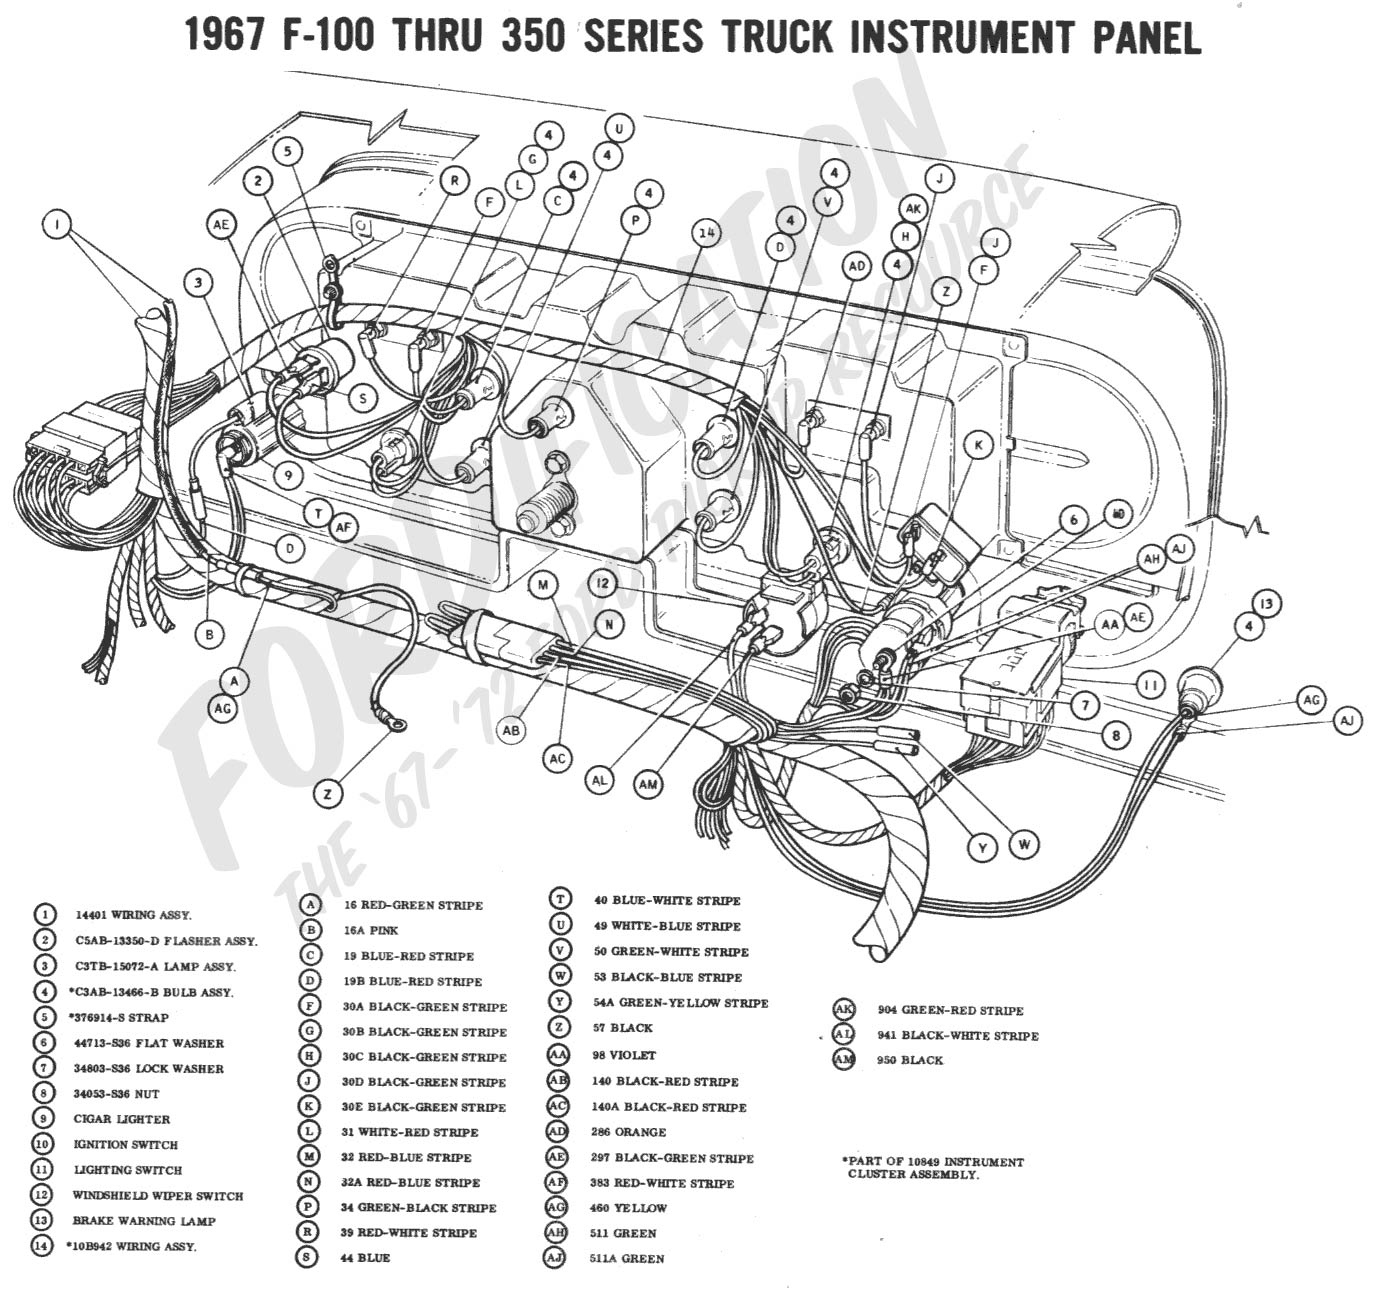 hight resolution of 1967 f 100 thru f 350 instrument panel 1967 master wiring diagram